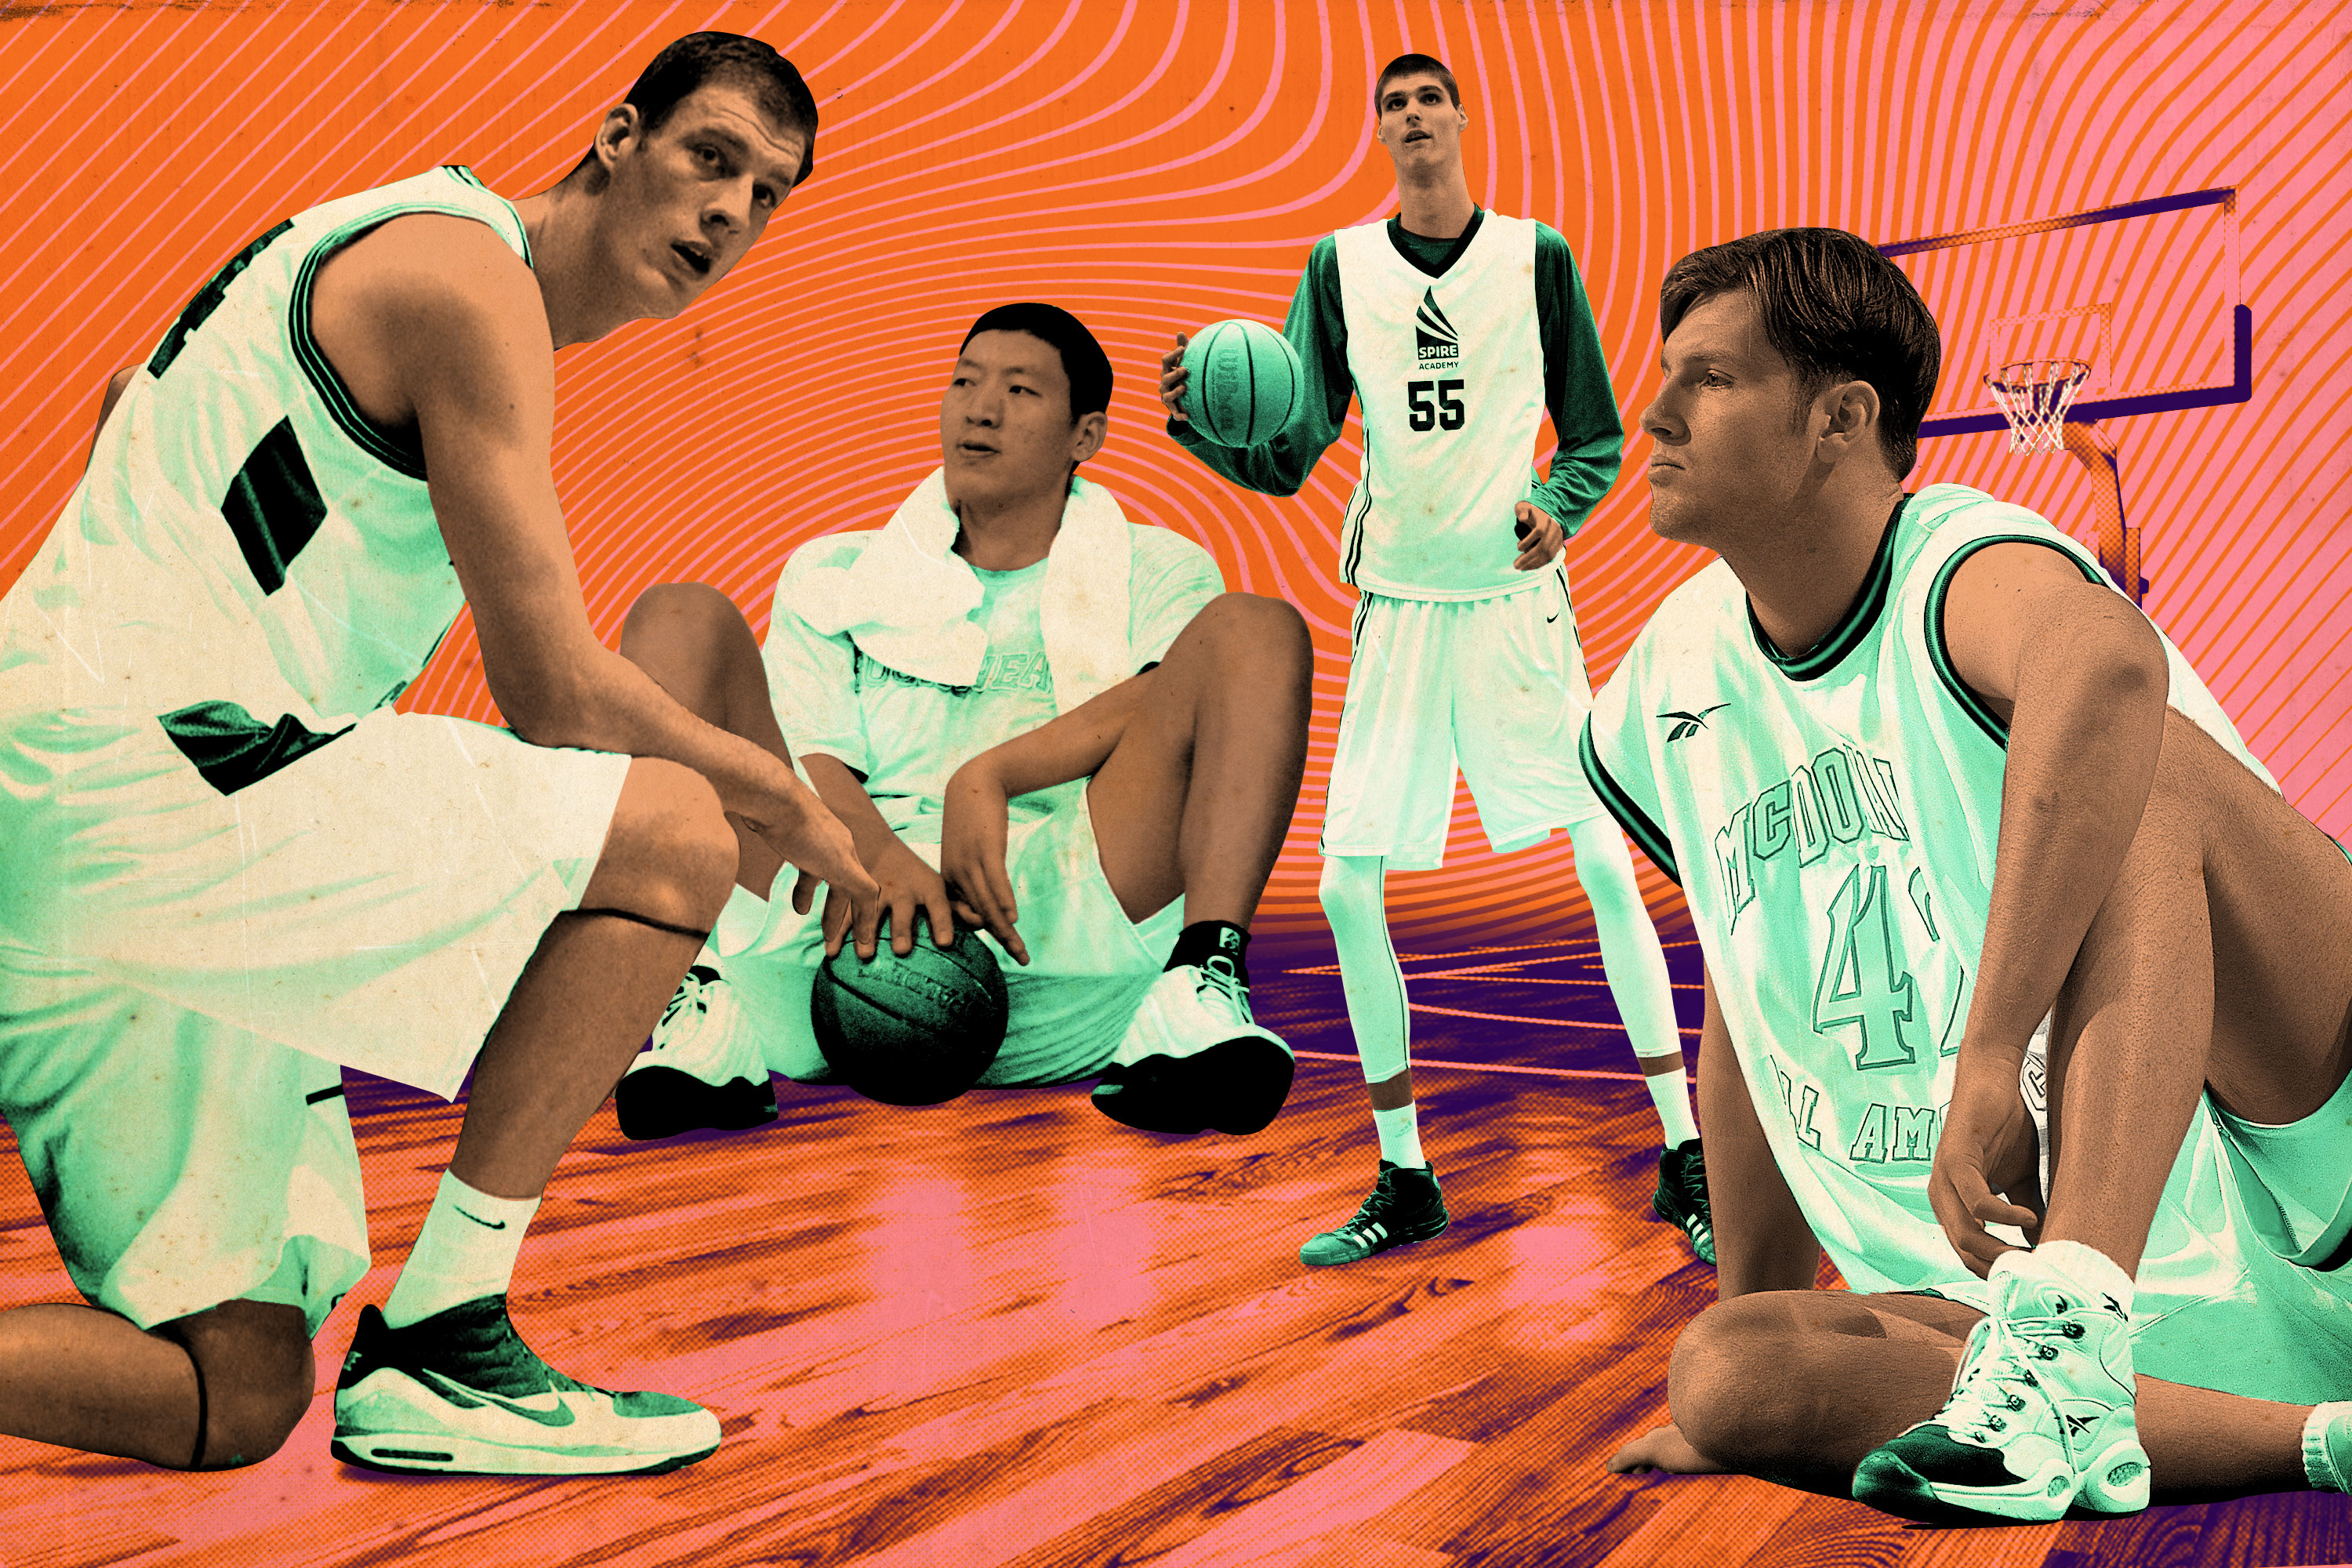 cbaa713833f13b The Tall Tales of Six Men Too Big for Basketball - The Ringer